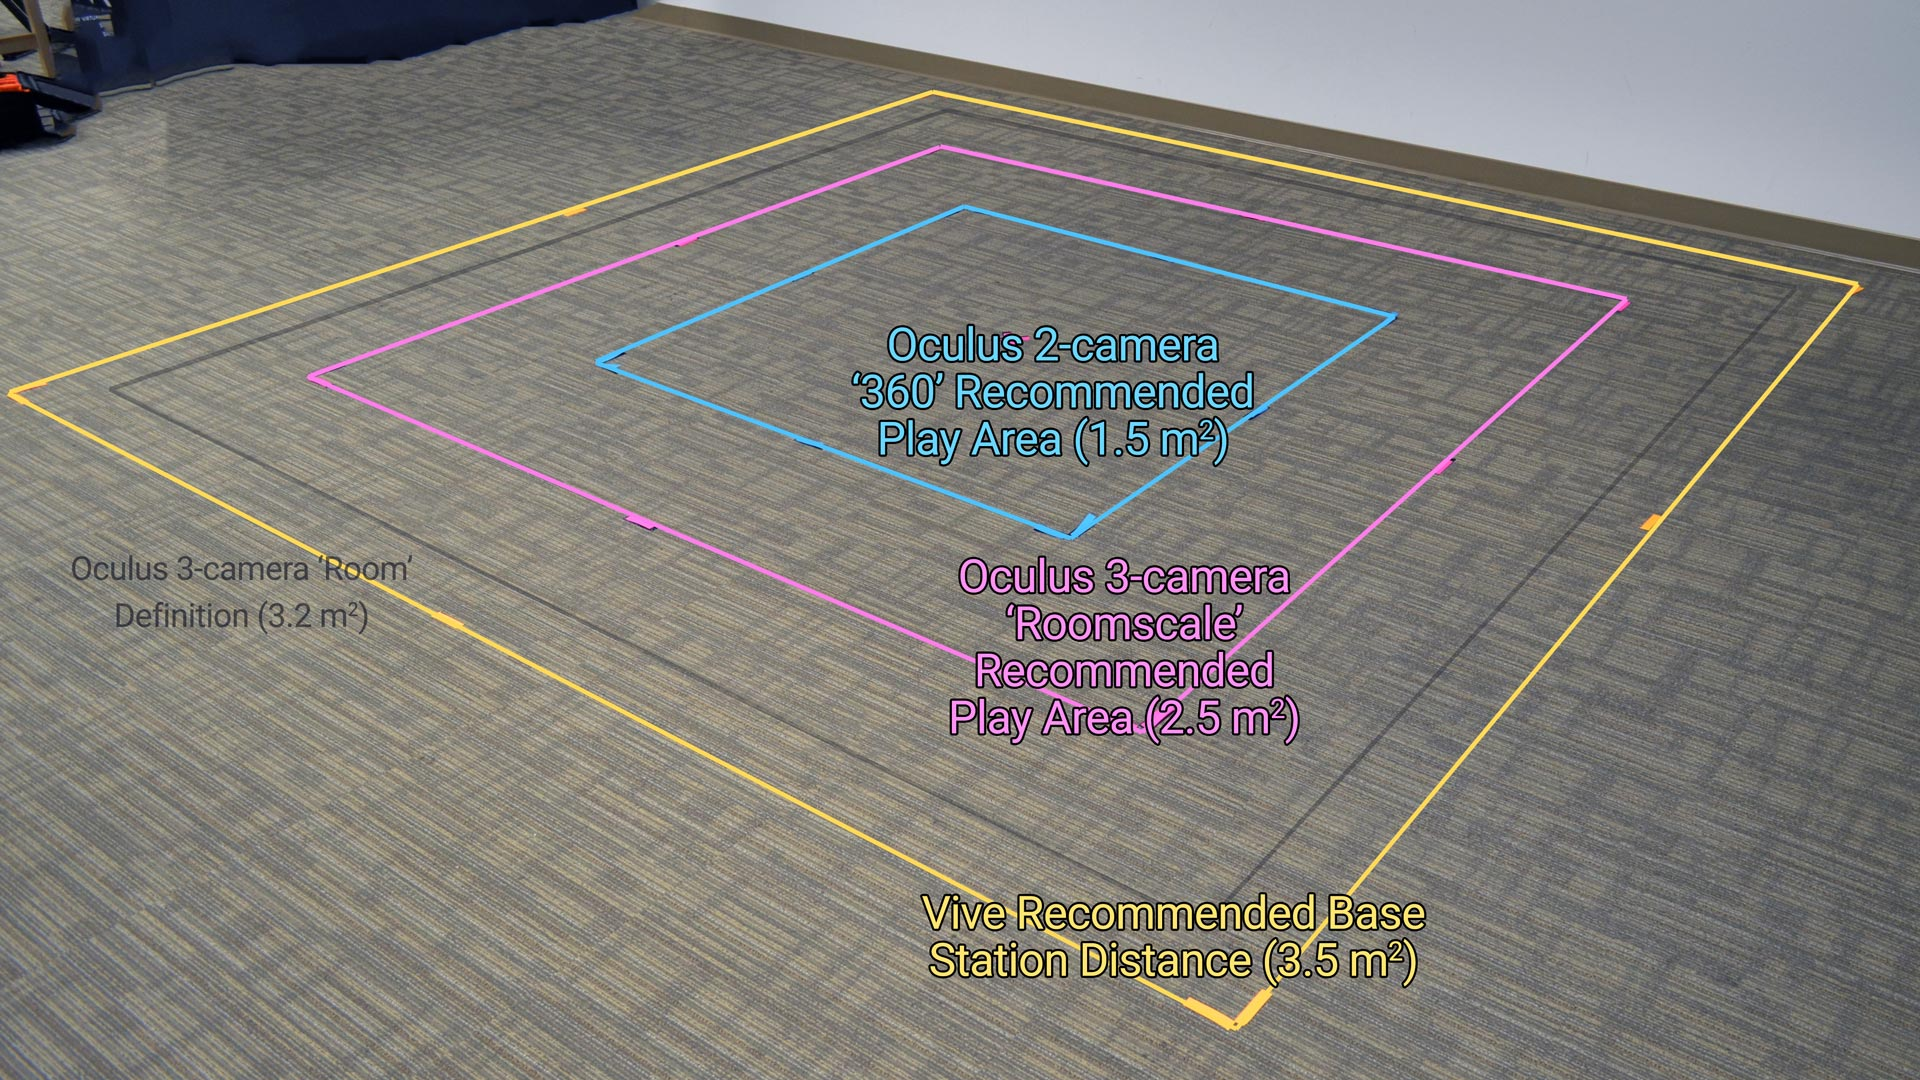 Oculus Rift Vs Htc Vive Room Scale Dimensions Compared